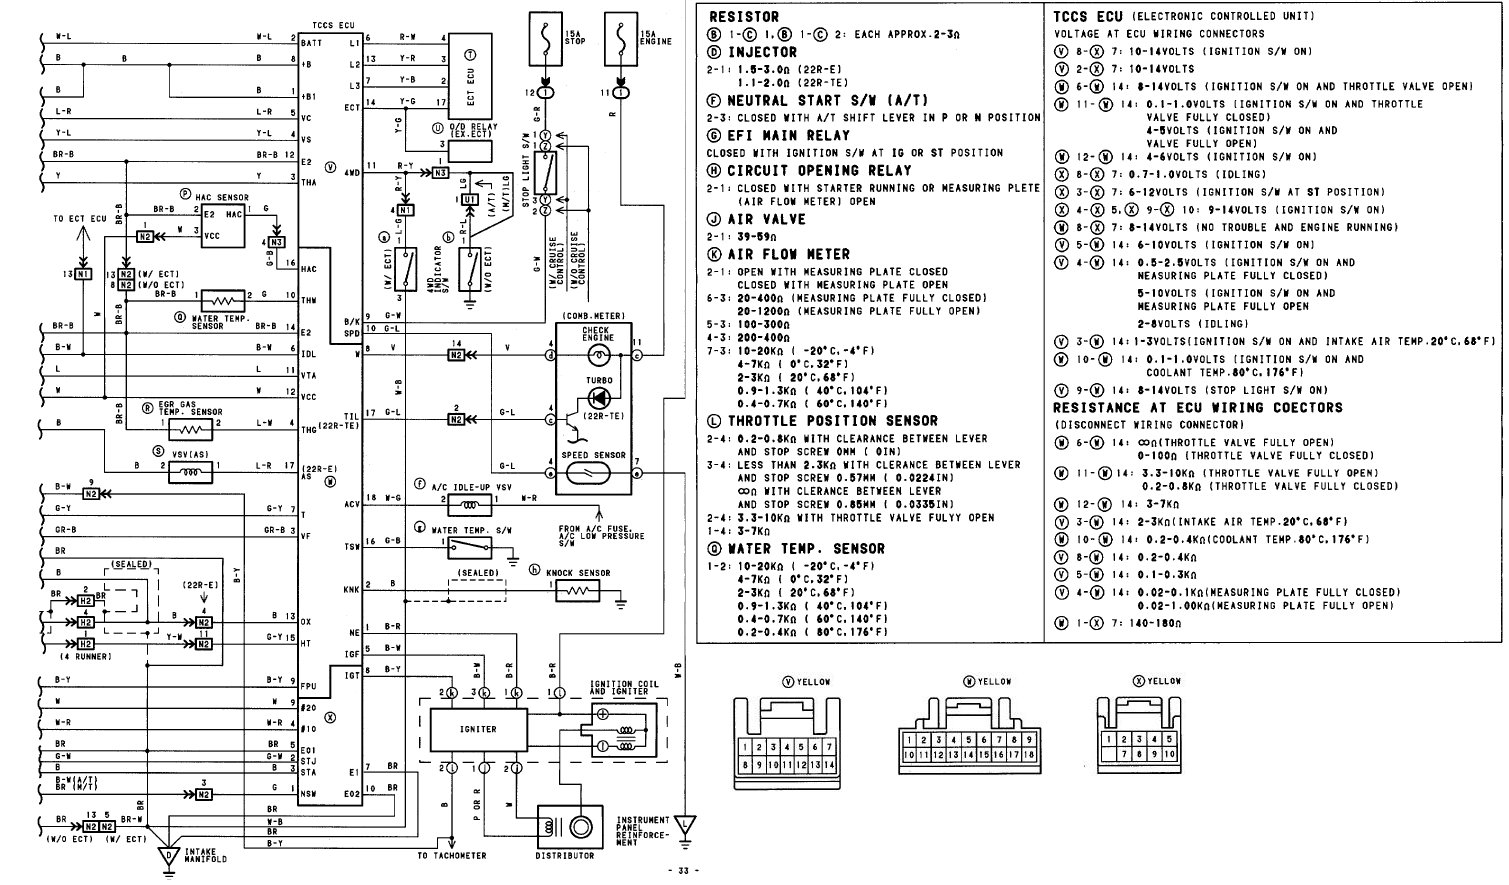 toyota 4runner wiring diagram jHkLHrj 2005 toyota 4runner wiring diagram wiring diagram simonand 2000 toyota 4runner wiring diagram at panicattacktreatment.co